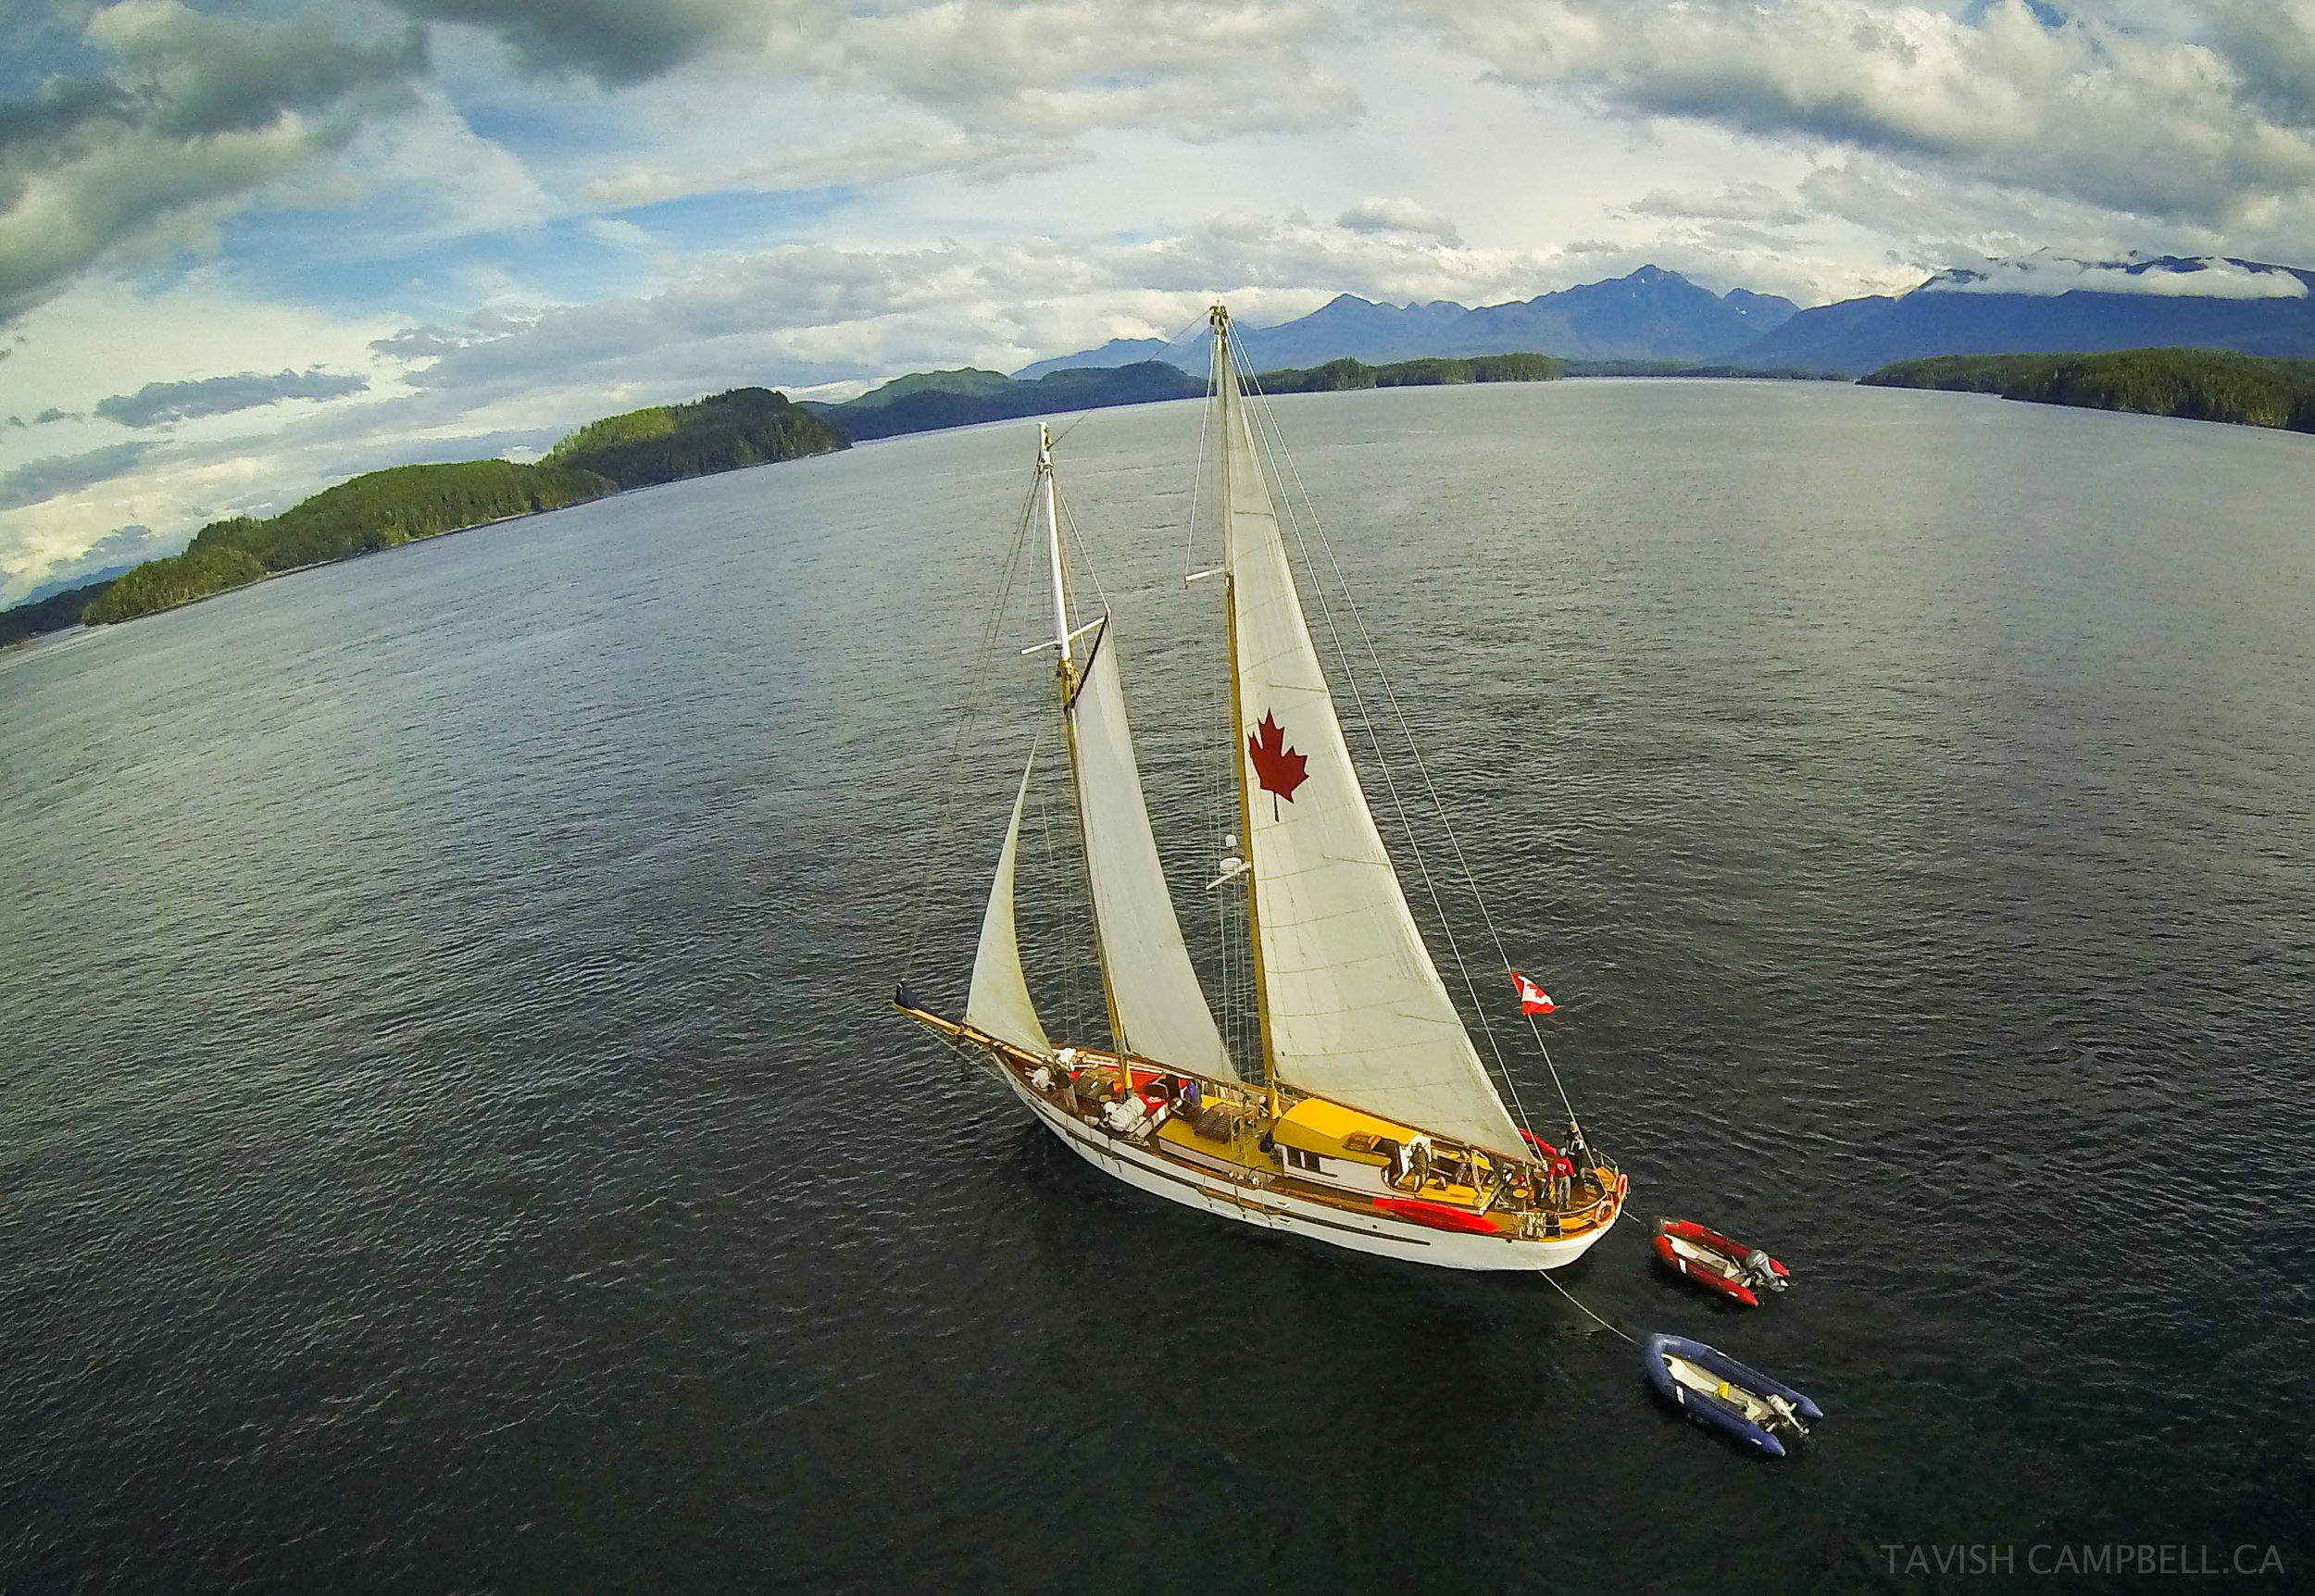 The schooner Maple Leaf catches a light breeze in Blackfish Sound, Broughton Archipelago. A camera was tied onto a kite and sent aloft for this shot in August 2013.